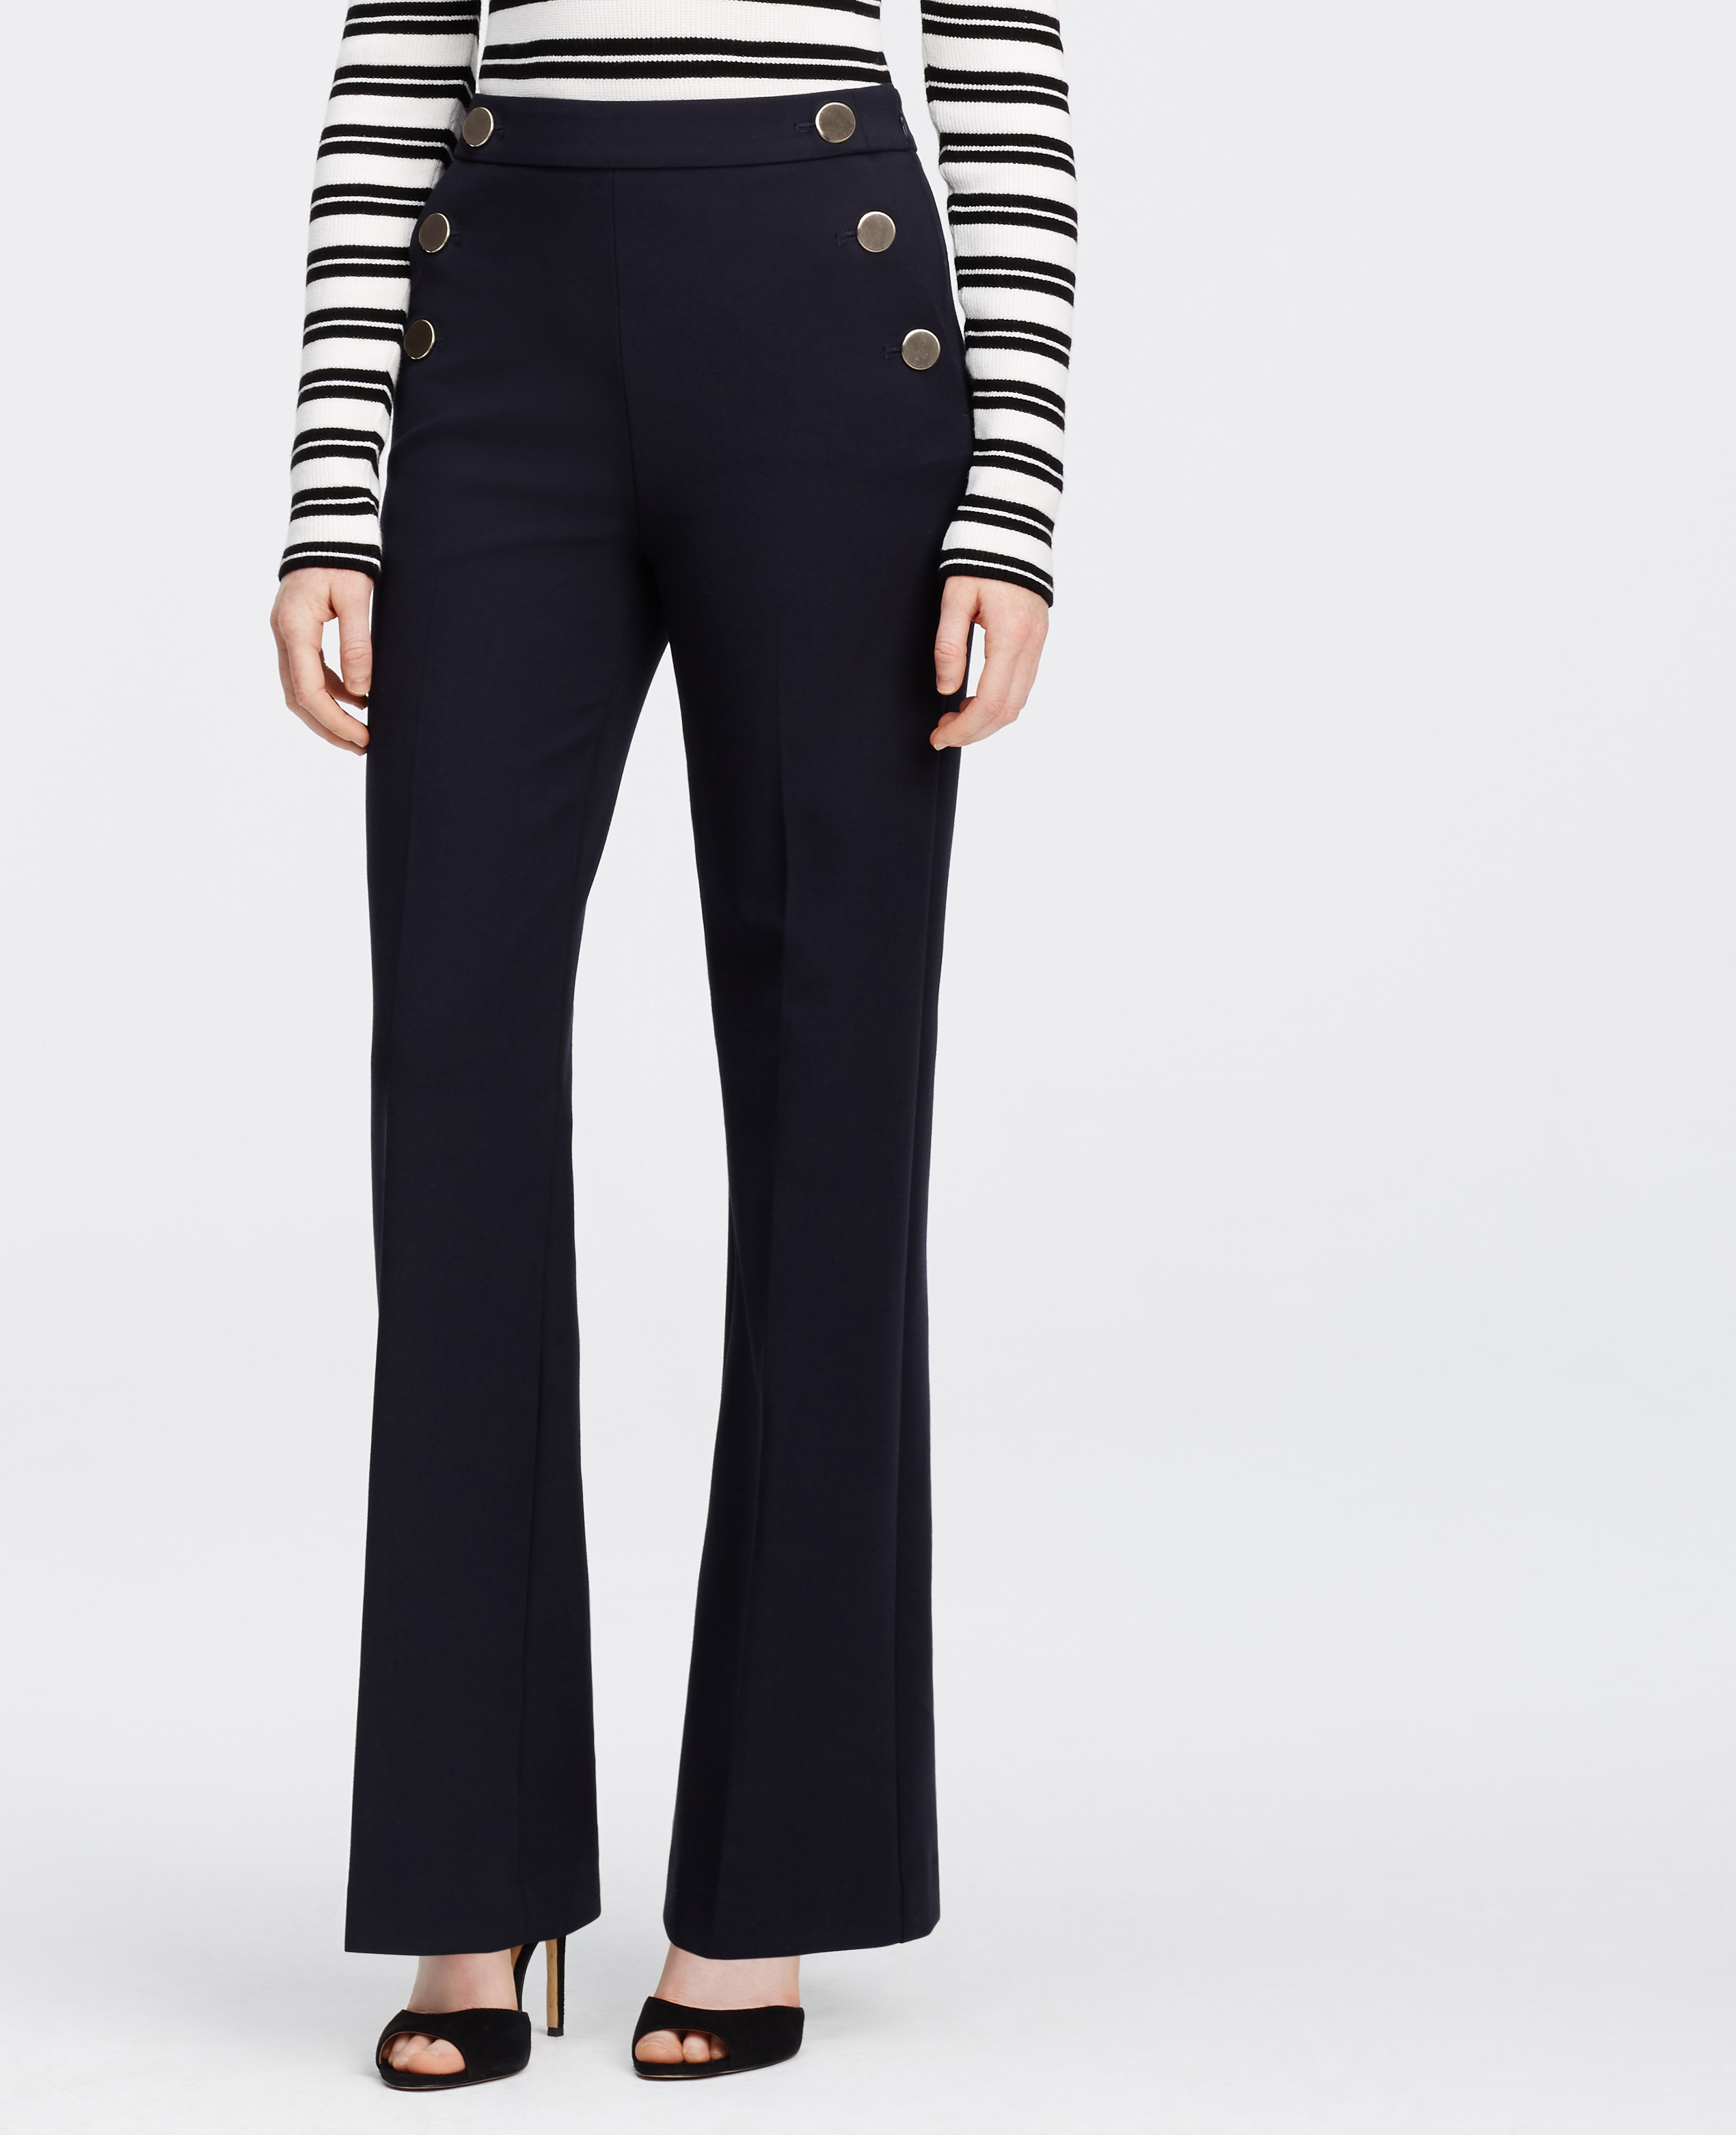 Popular Lyst - Ann Taylor Sailor Pants in Blue LF84